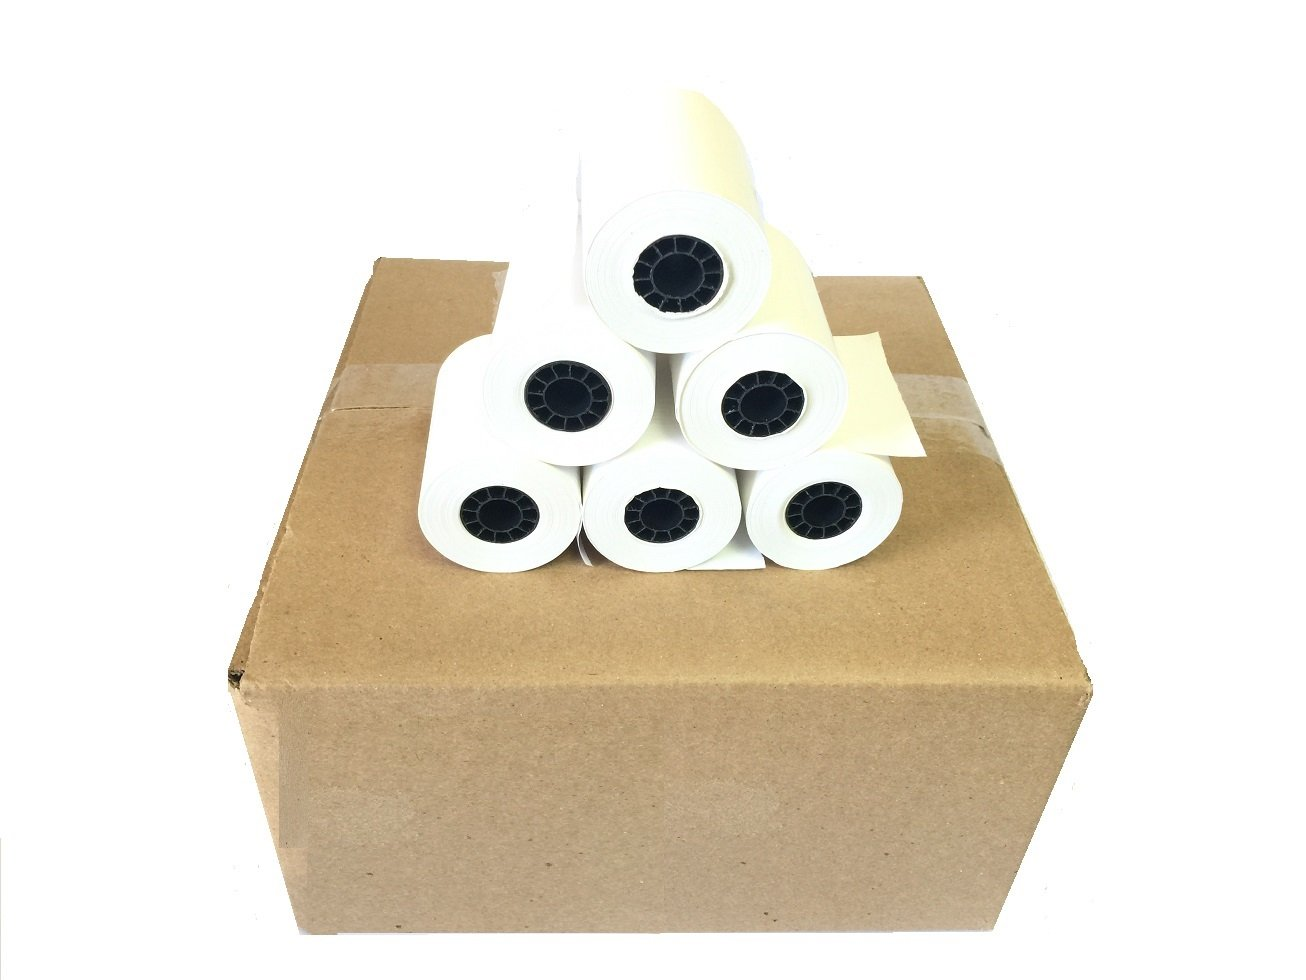 BAM POS, 2-1/4 x 50' 1-Ply Thermal Paper 50 Rolls for the Ingenico ICT 200/220/250 / Verifone VX 520 / Hypercom/Nurit by BAM POS